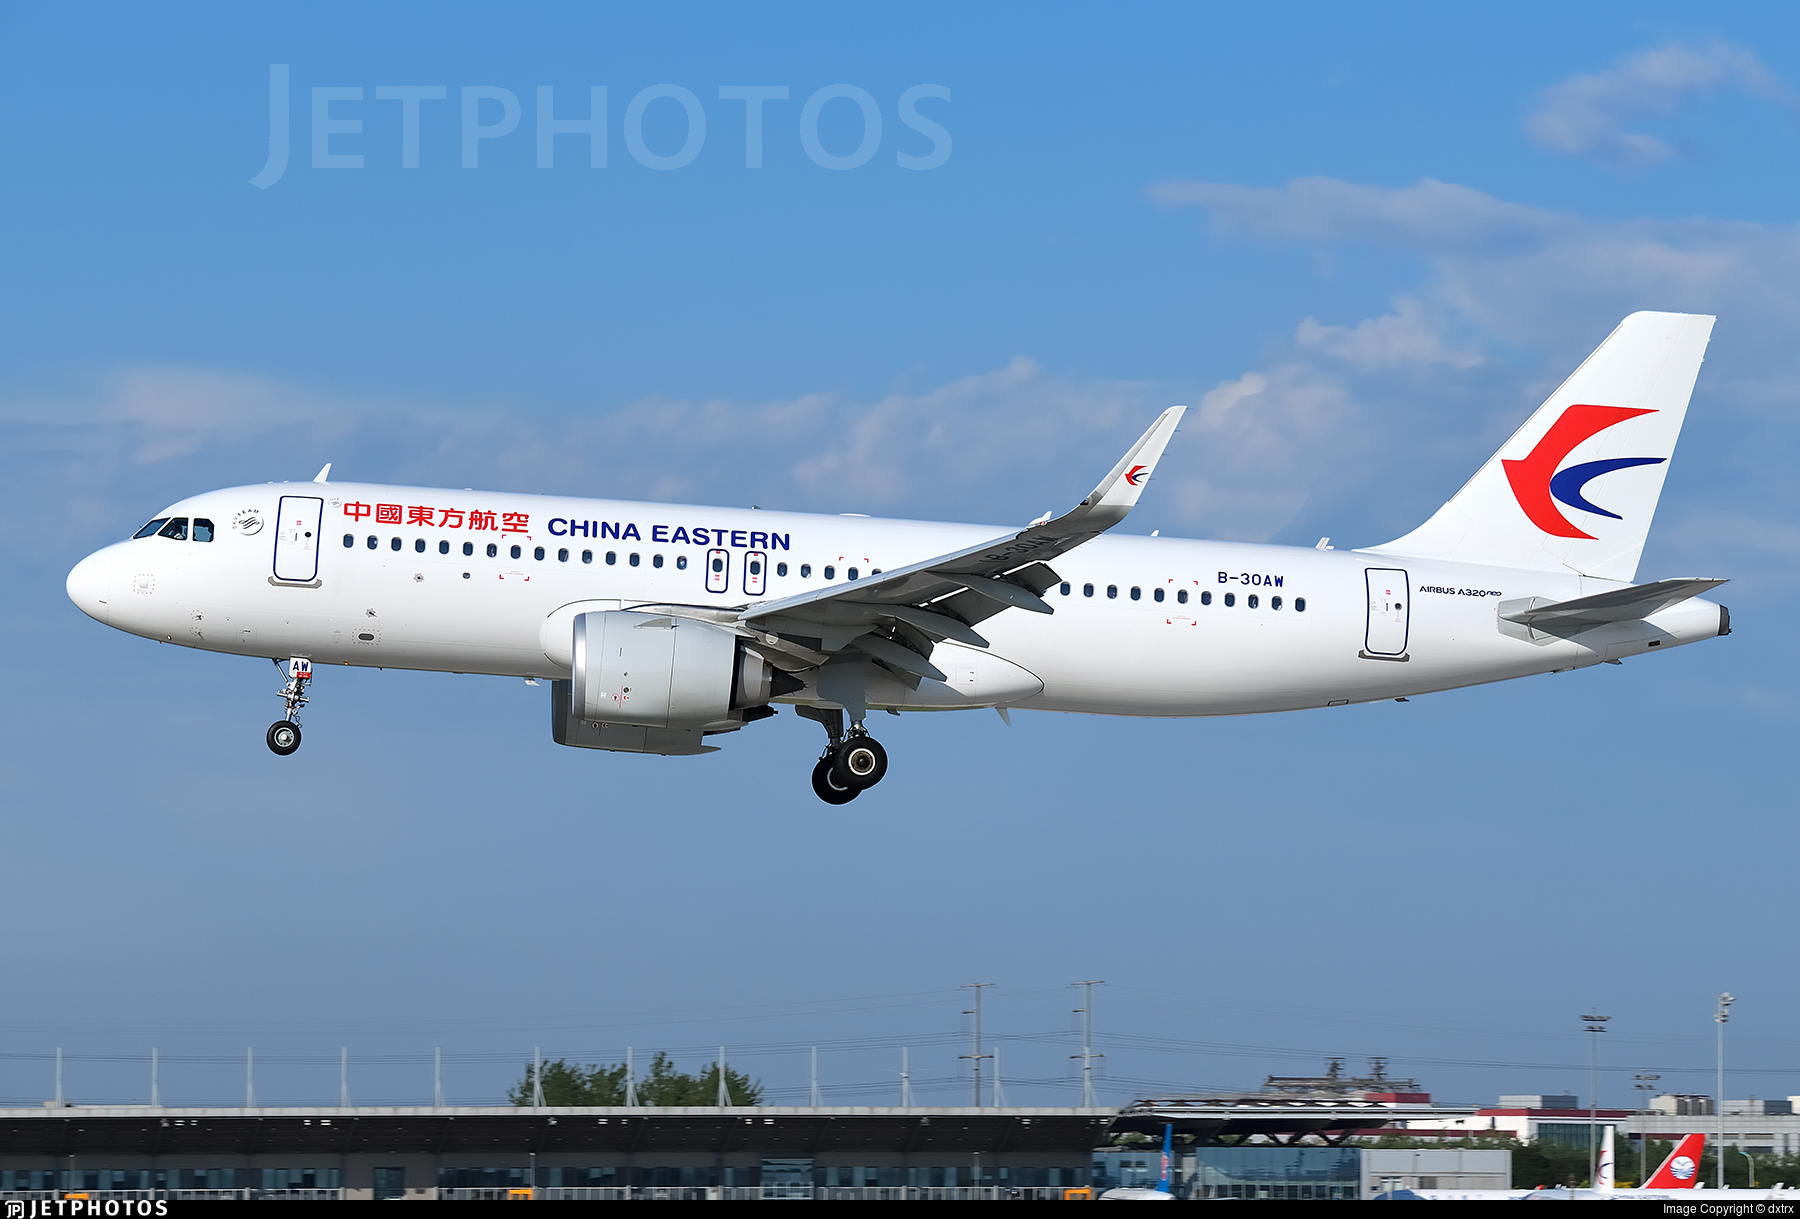 B-30AW - Airbus A320-251N - China Eastern Airlines